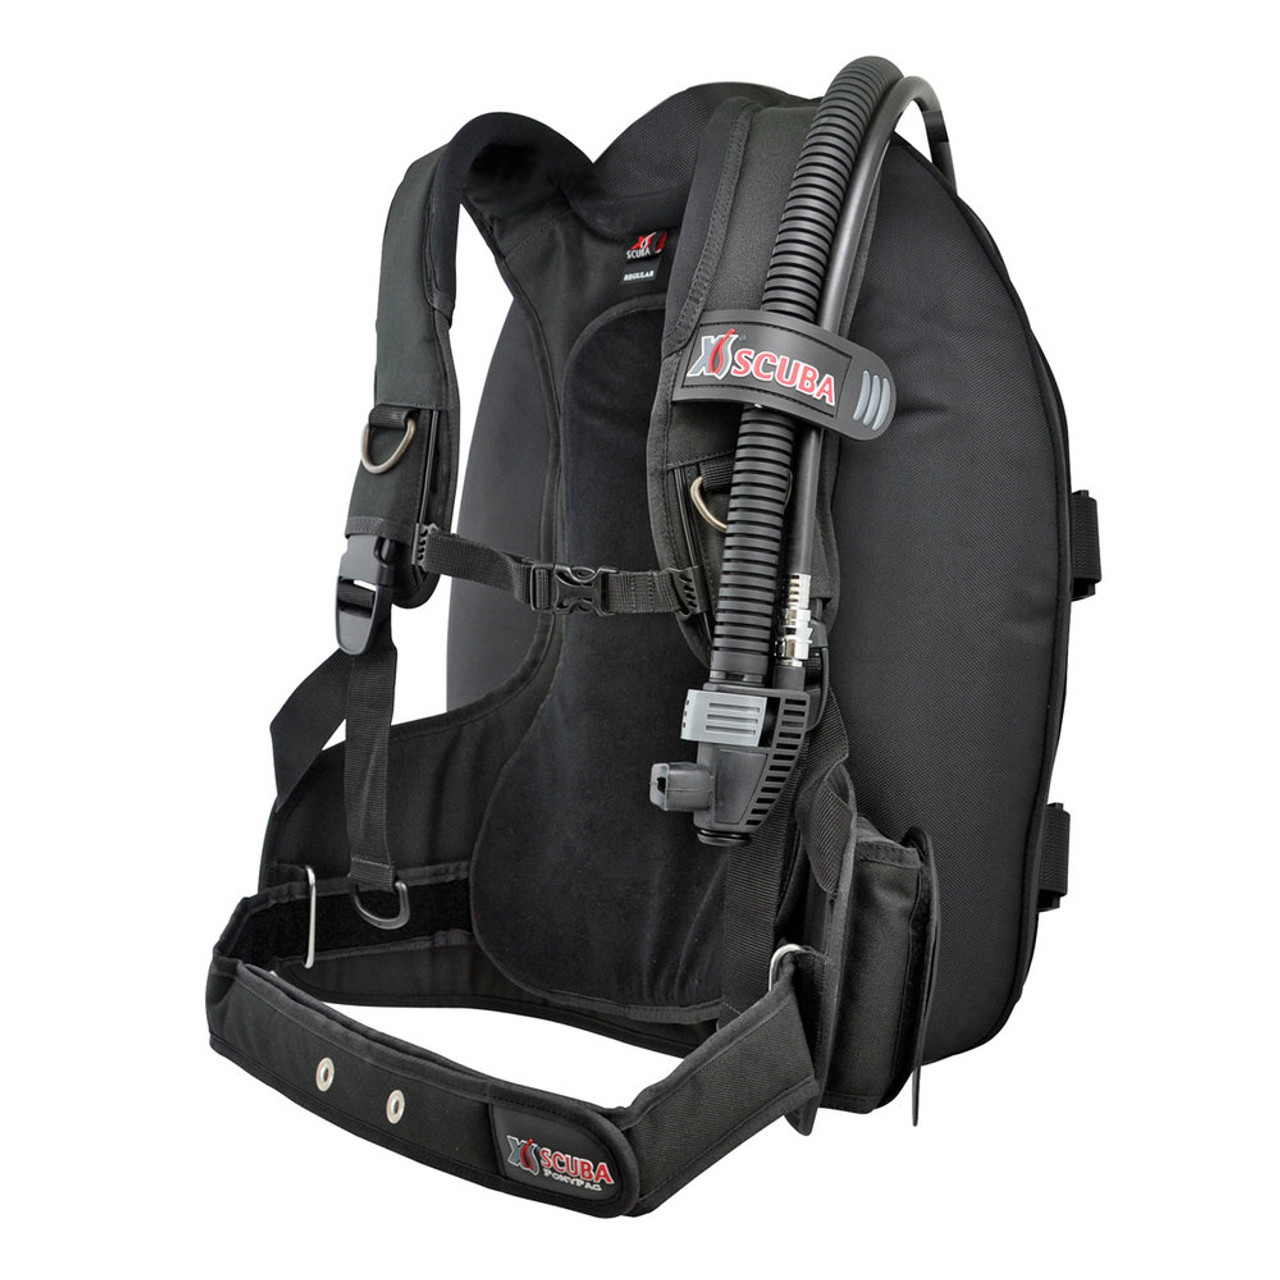 XS Scuba Companion BC Back Inflate Travel BCD